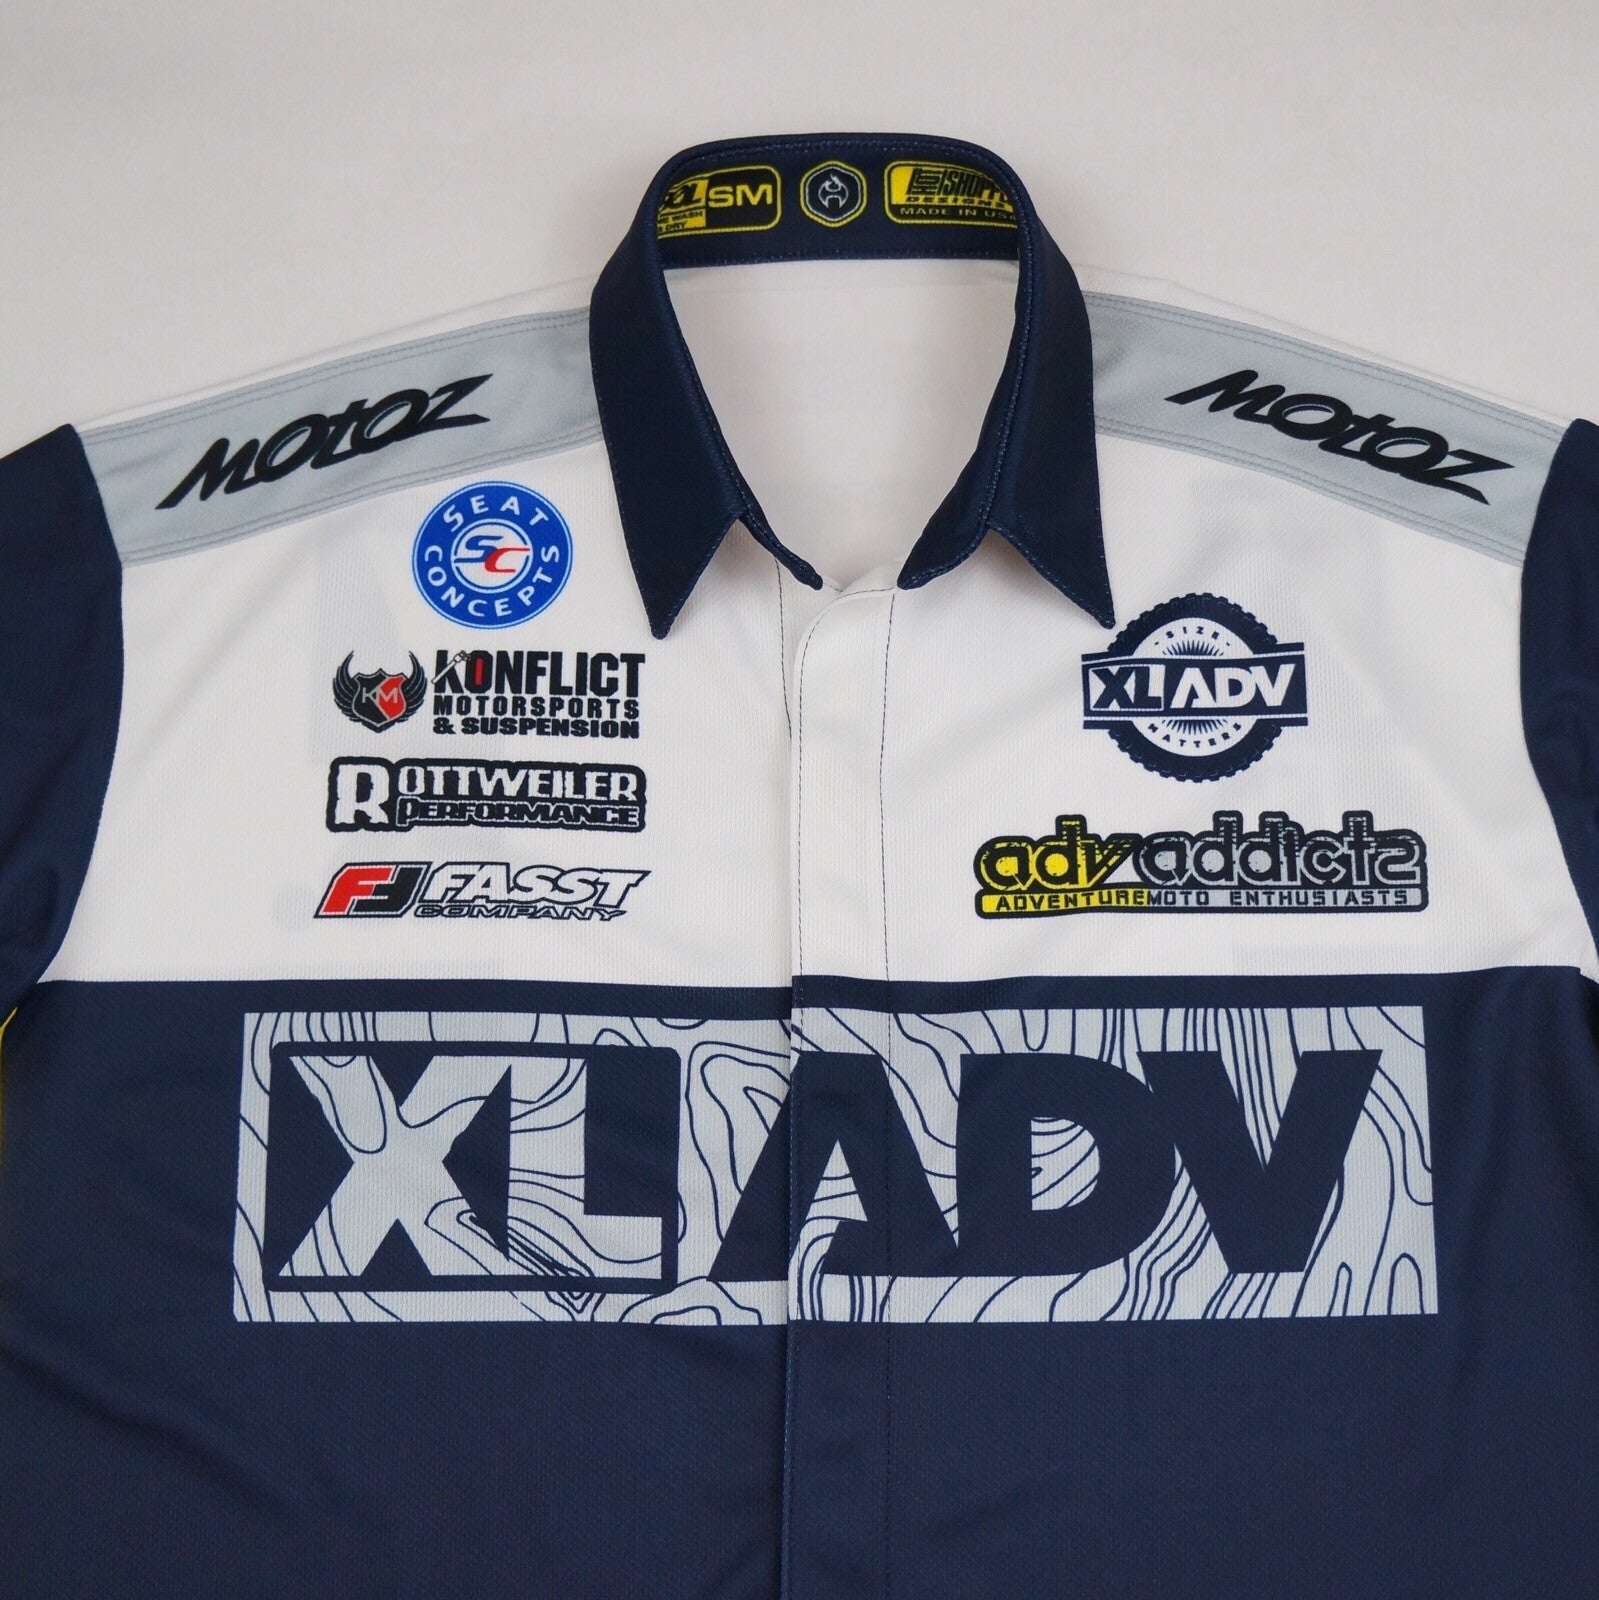 XLADV ADV ADDICTS FACTORY RACING CREW SHIRT